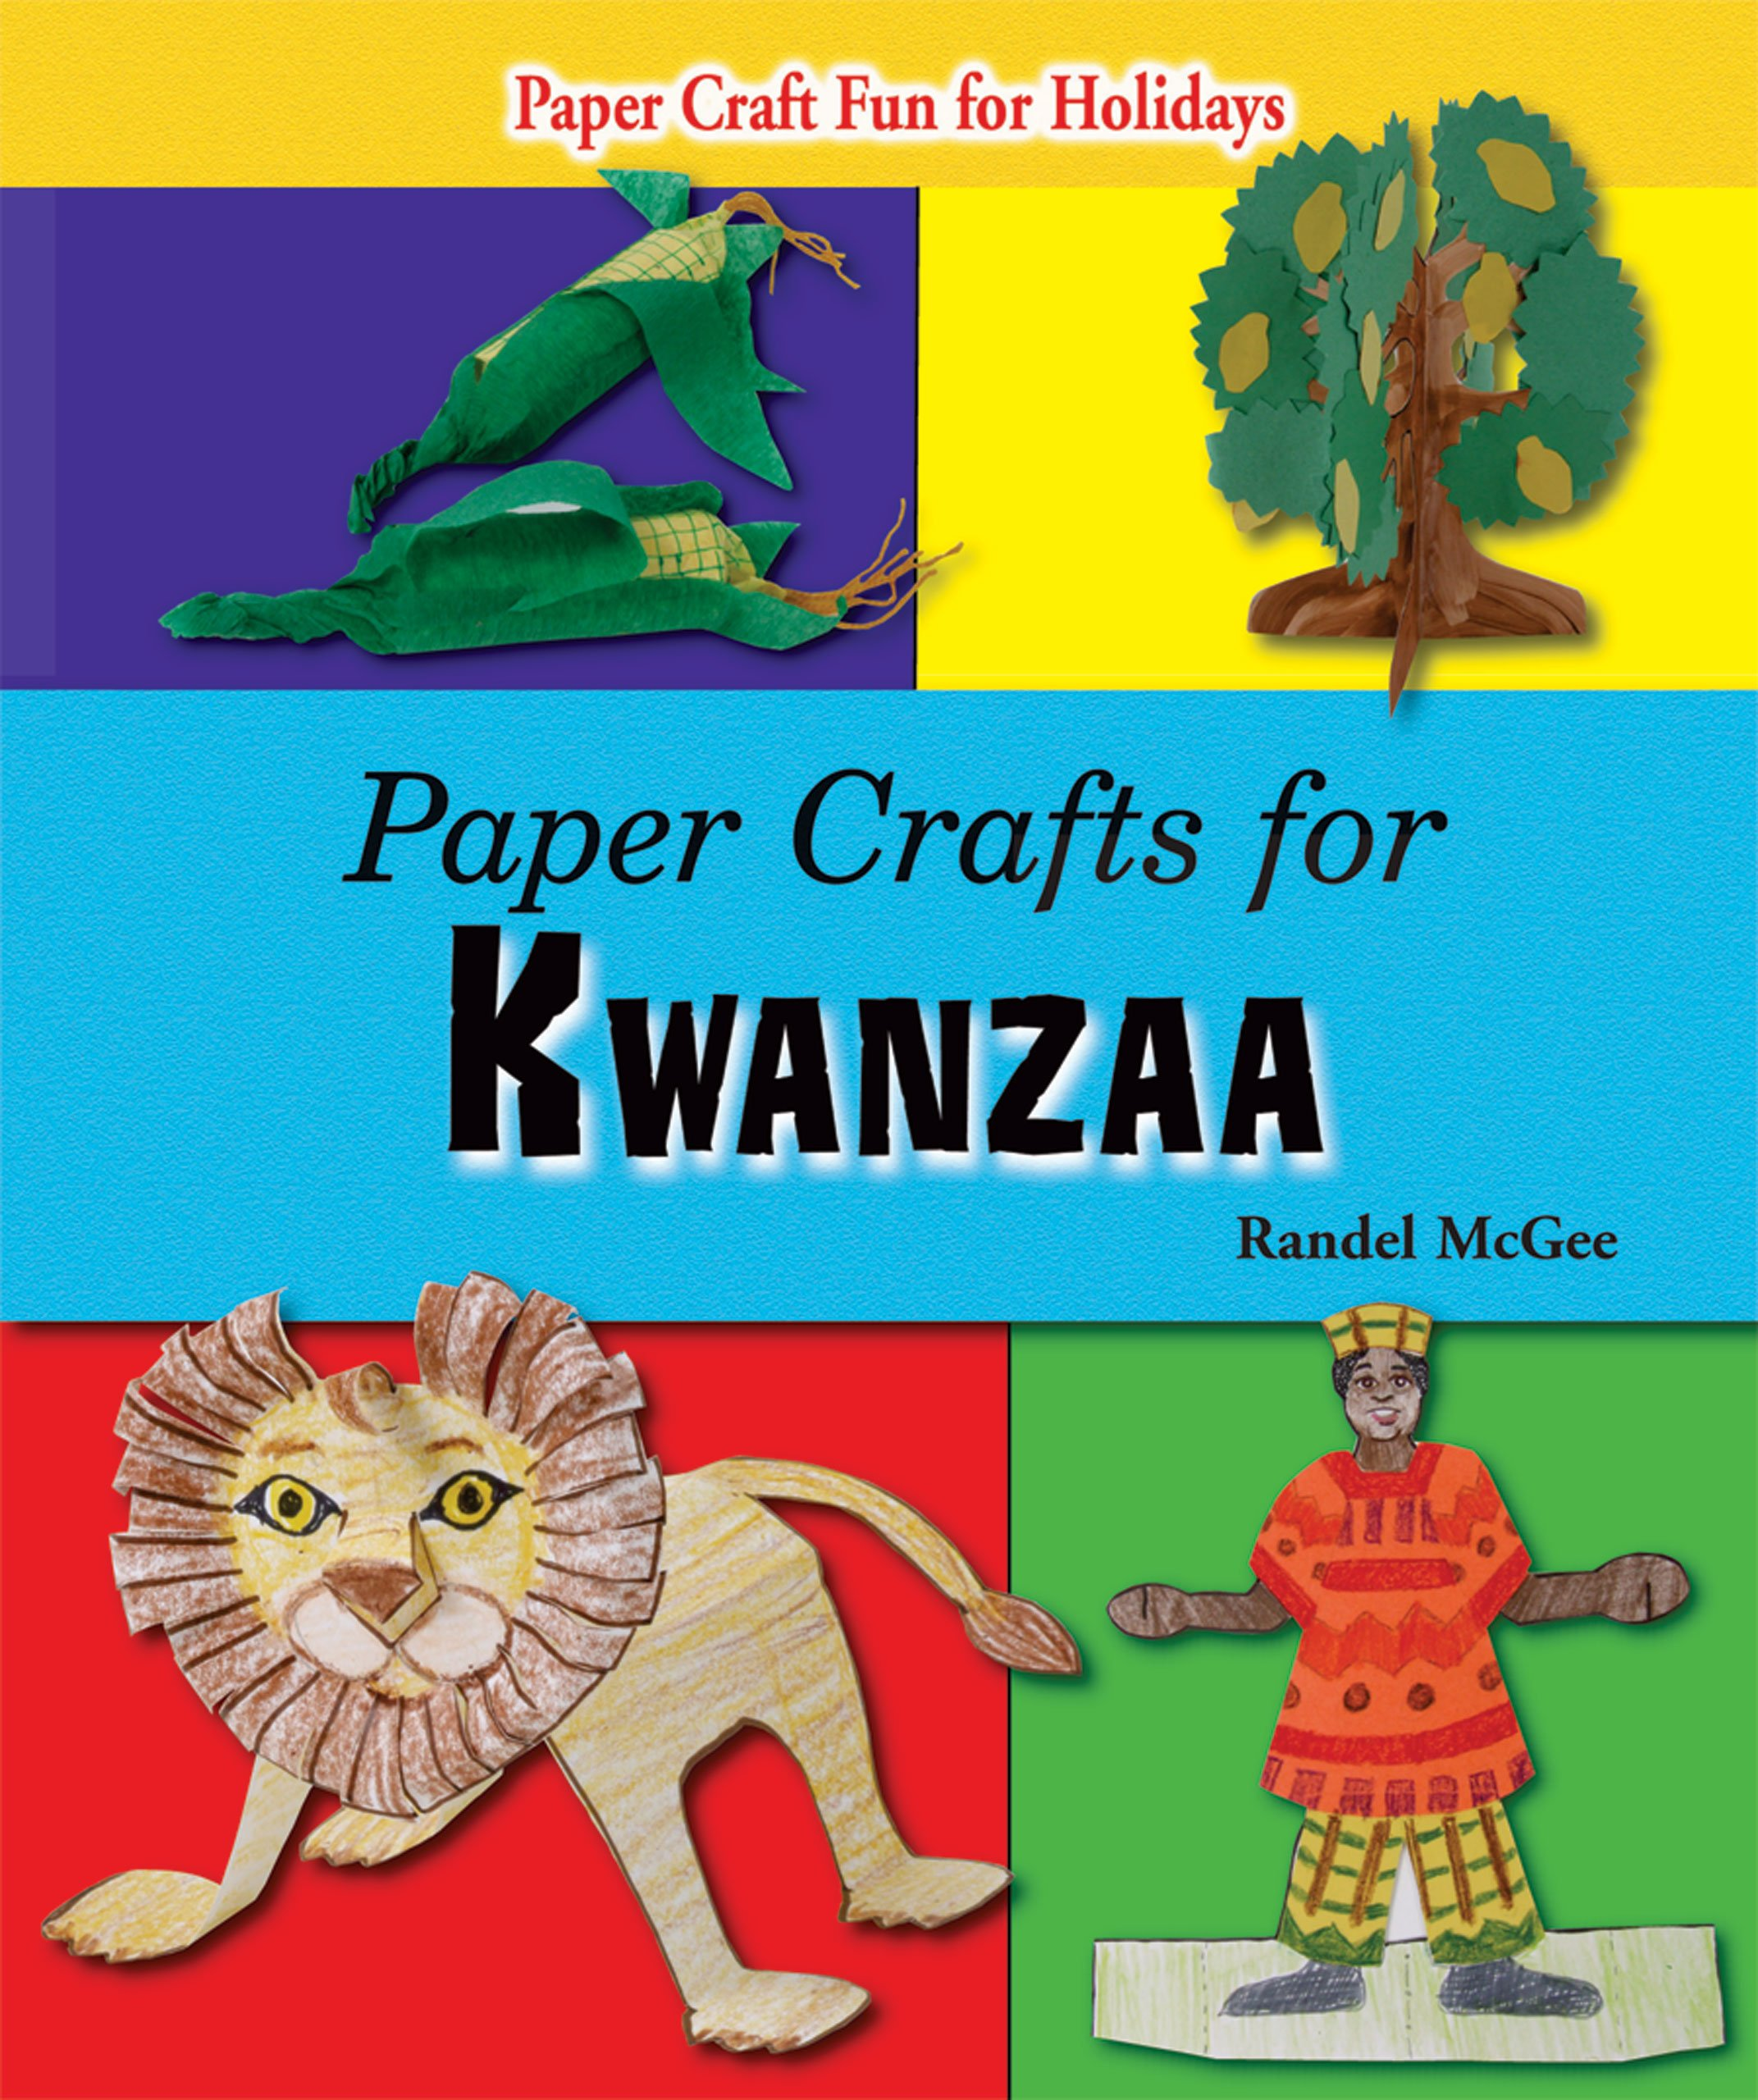 Paper Crafts for Kwanzaa (Paper Craft Fun for Holidays)